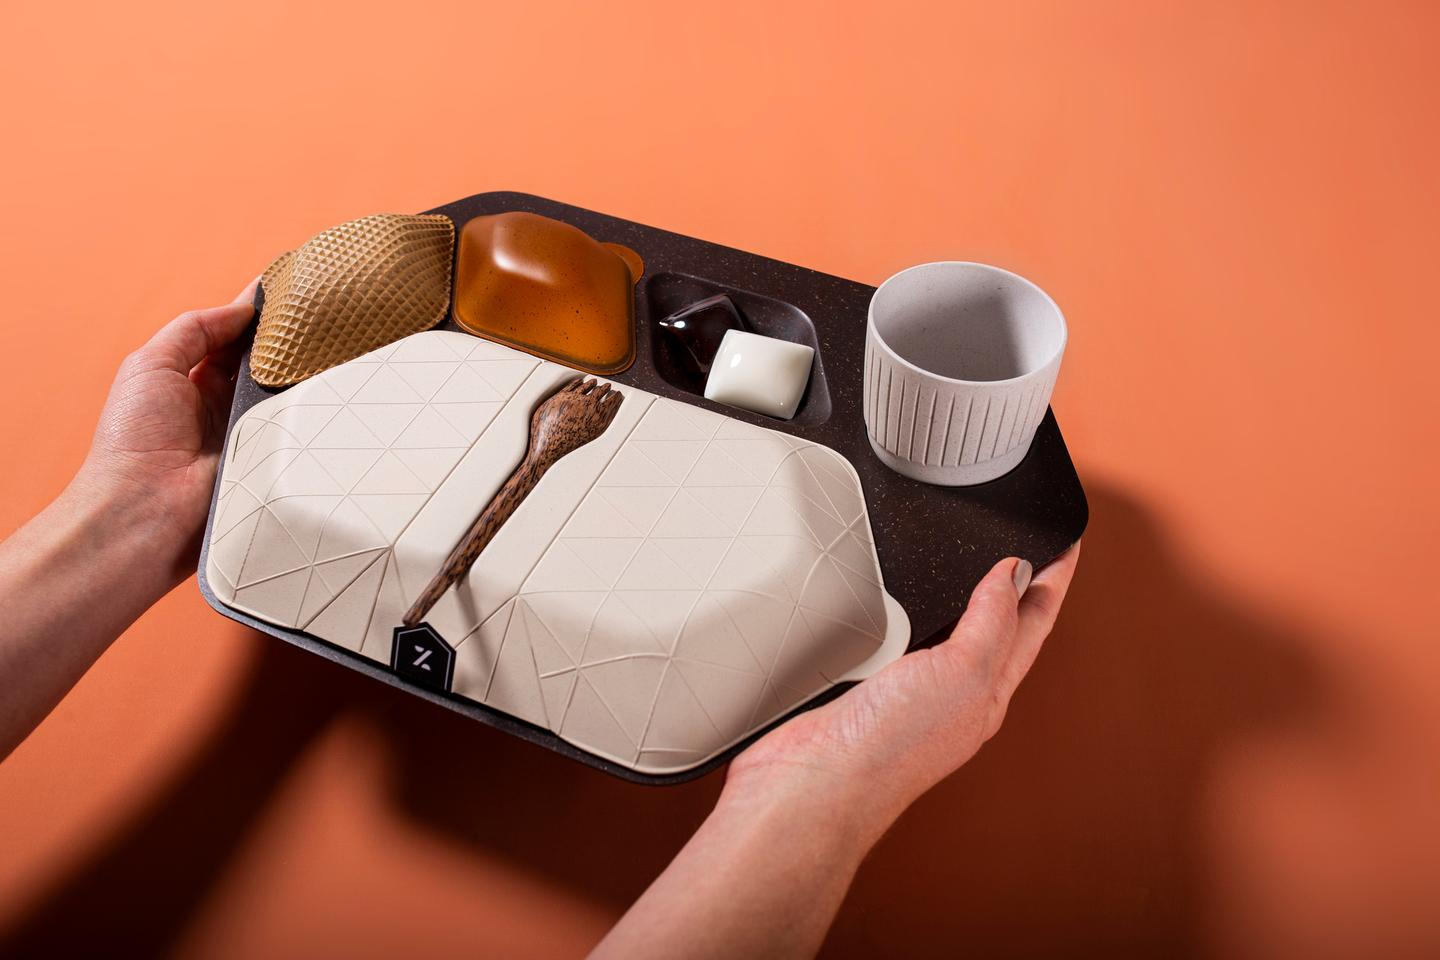 Design studio PriestmanGoode recently revealed an innovative and sustainable in-flight meal tray concept that includes edible packaging